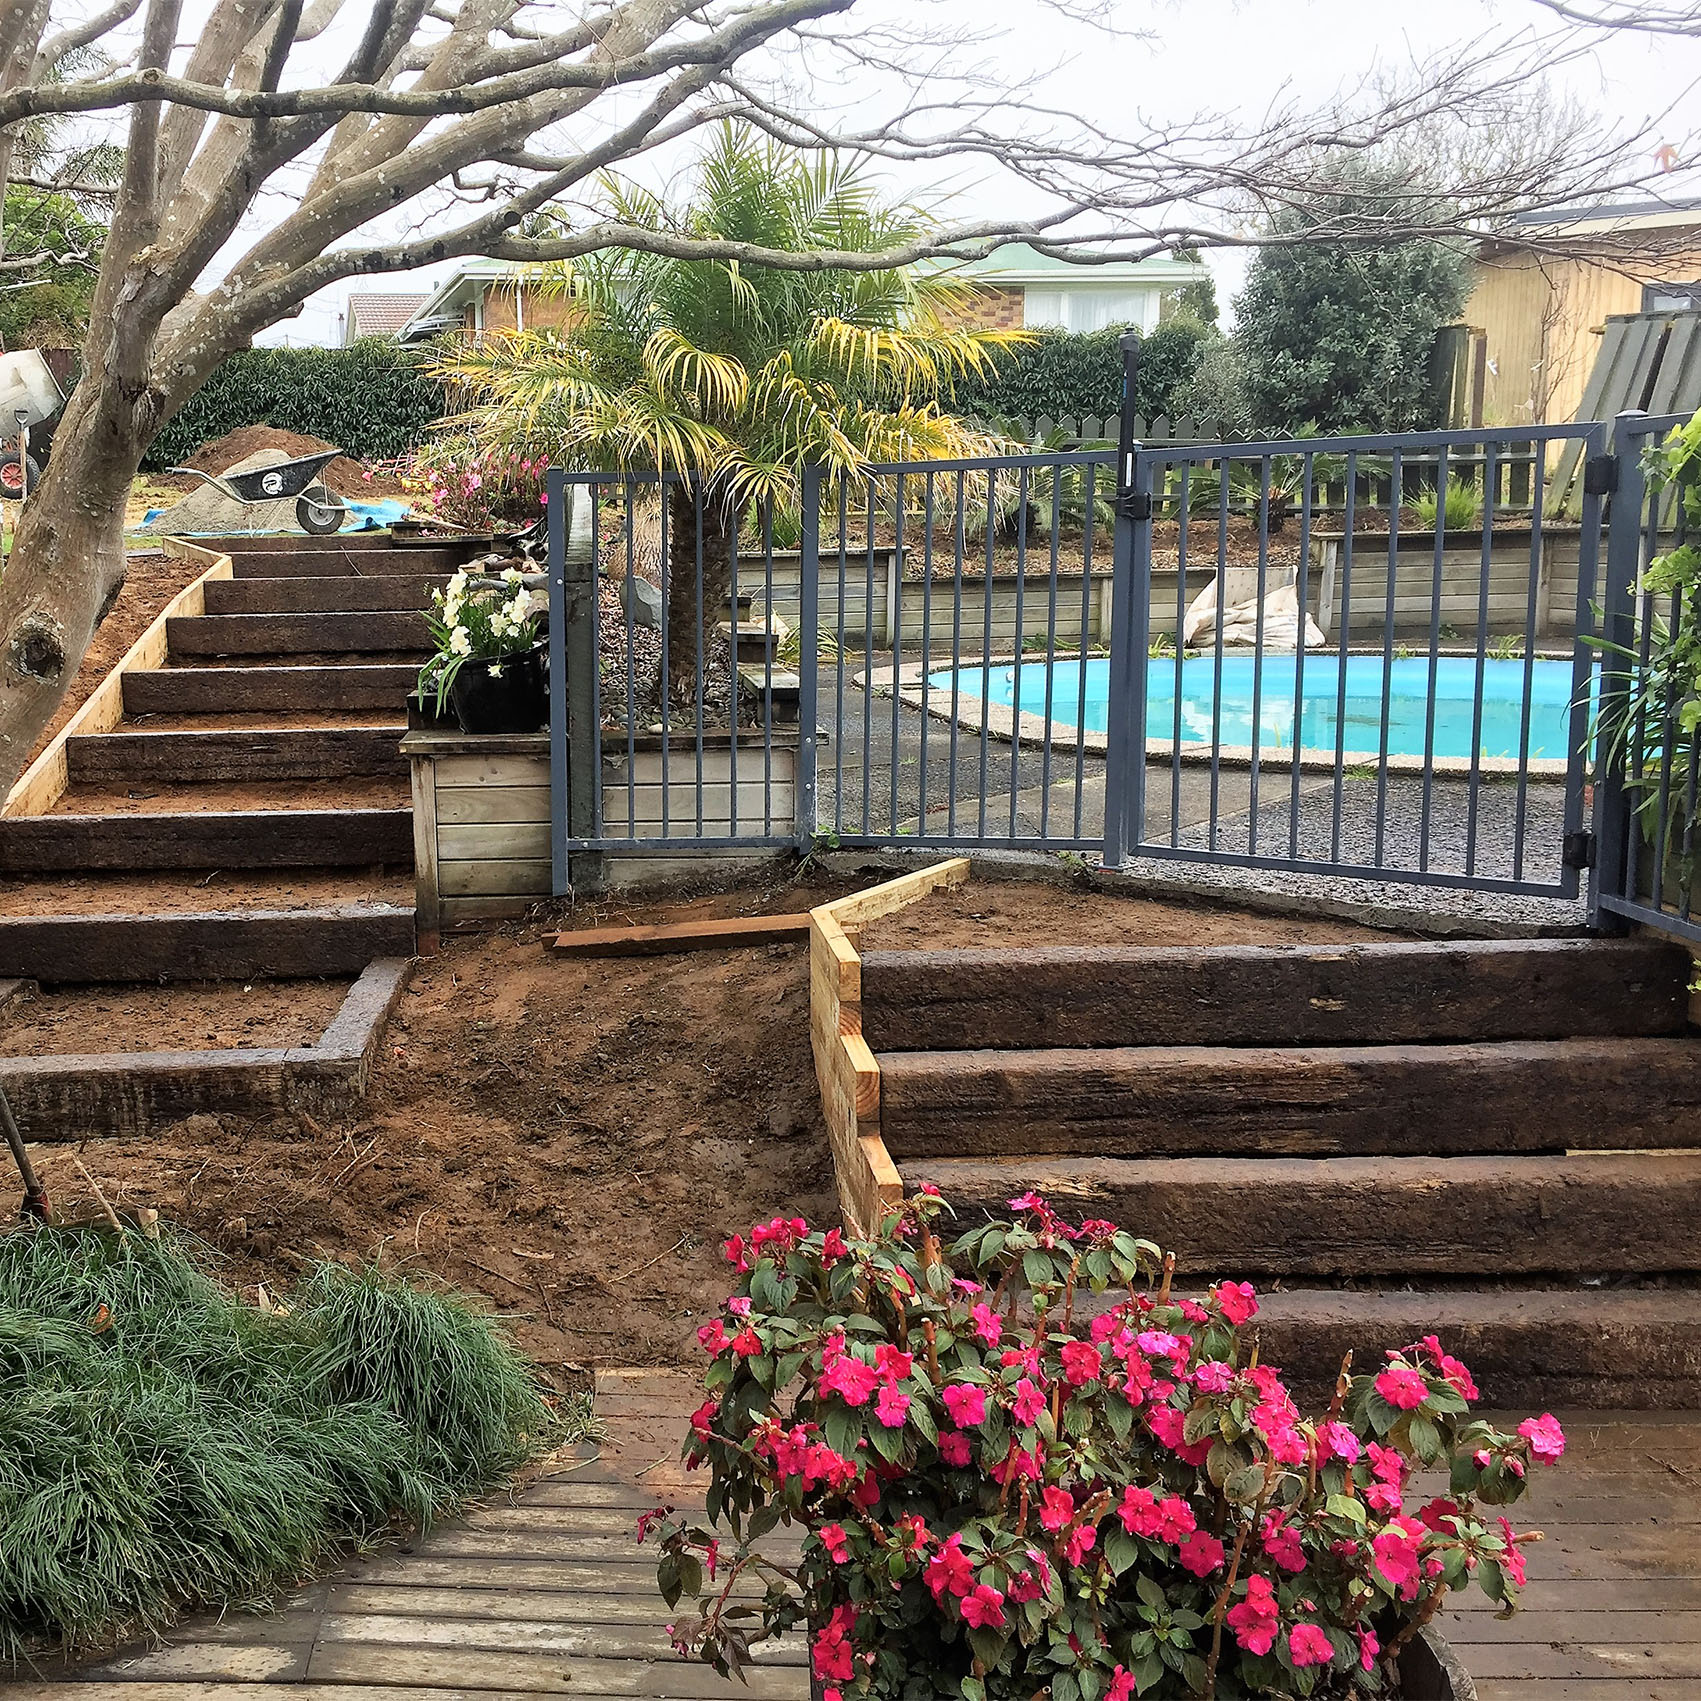 tepuke landscaping services pool fencing, stairs and yard work